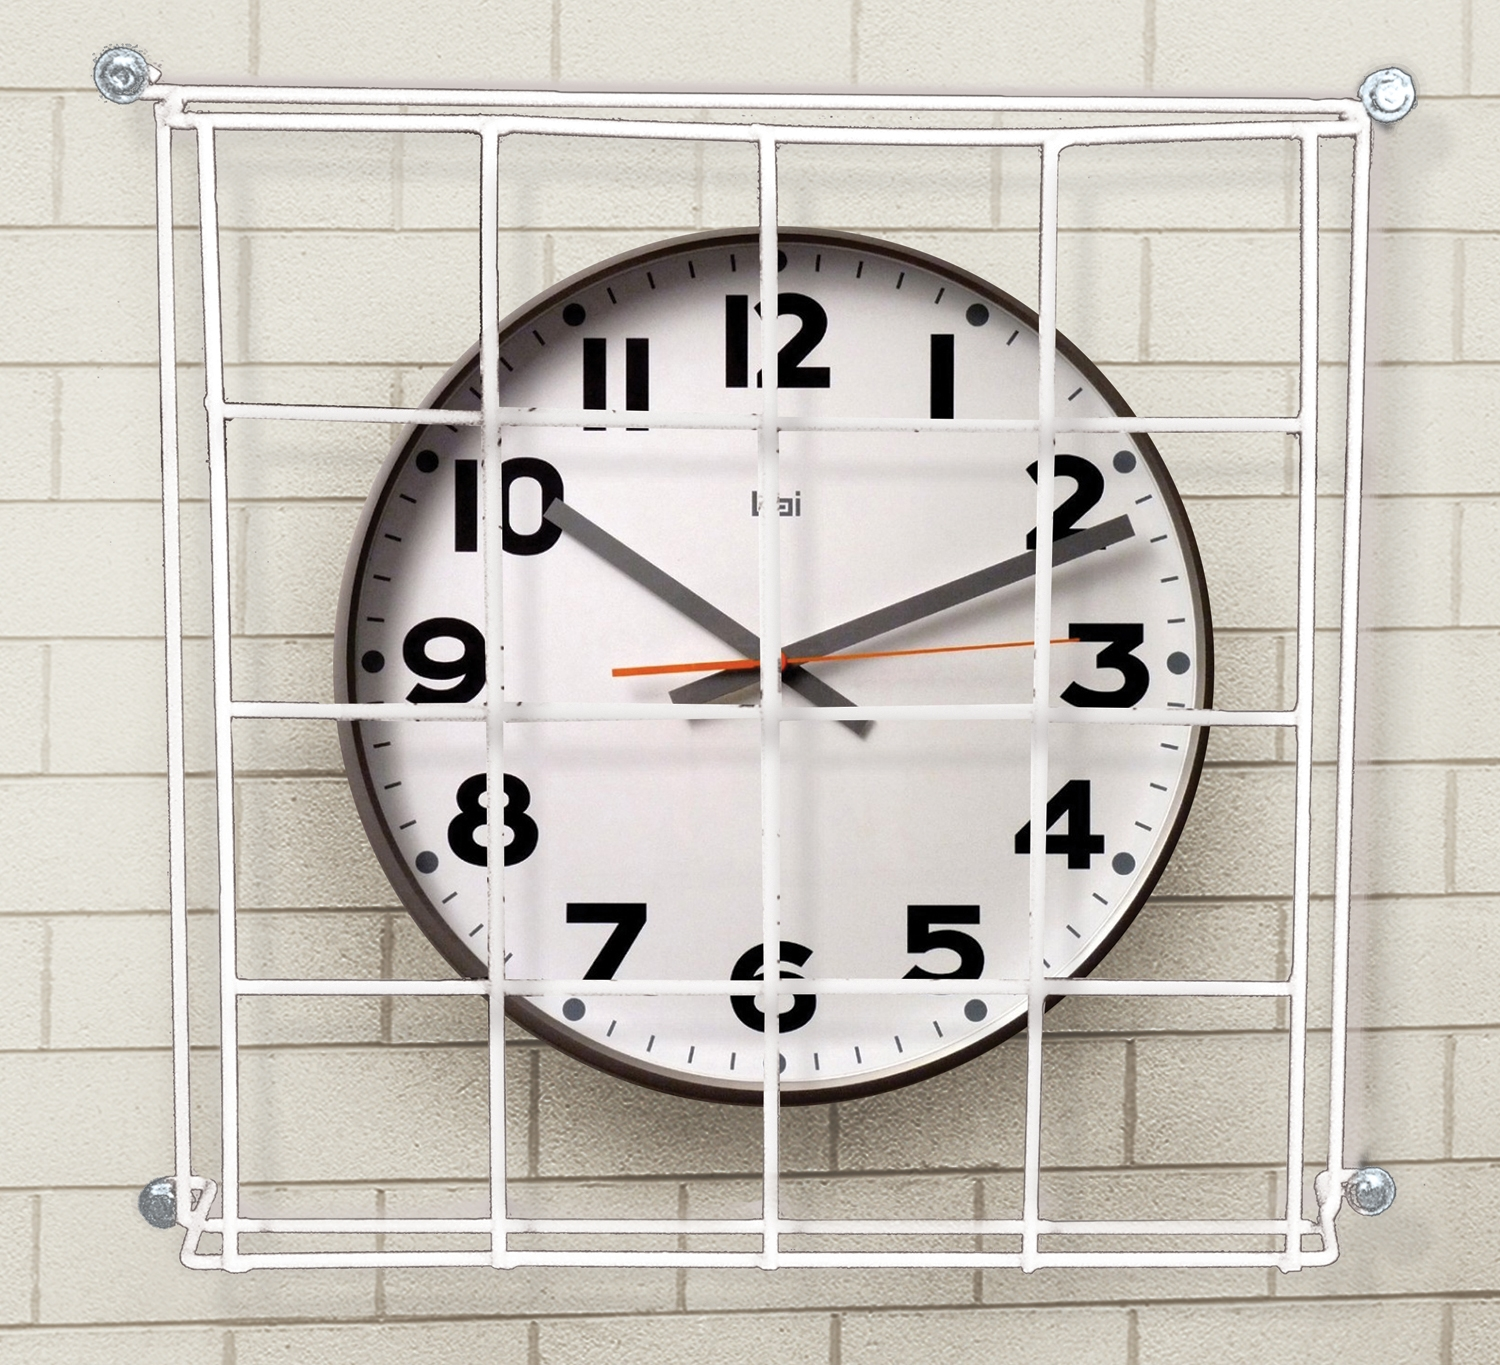 Clock cage for gym